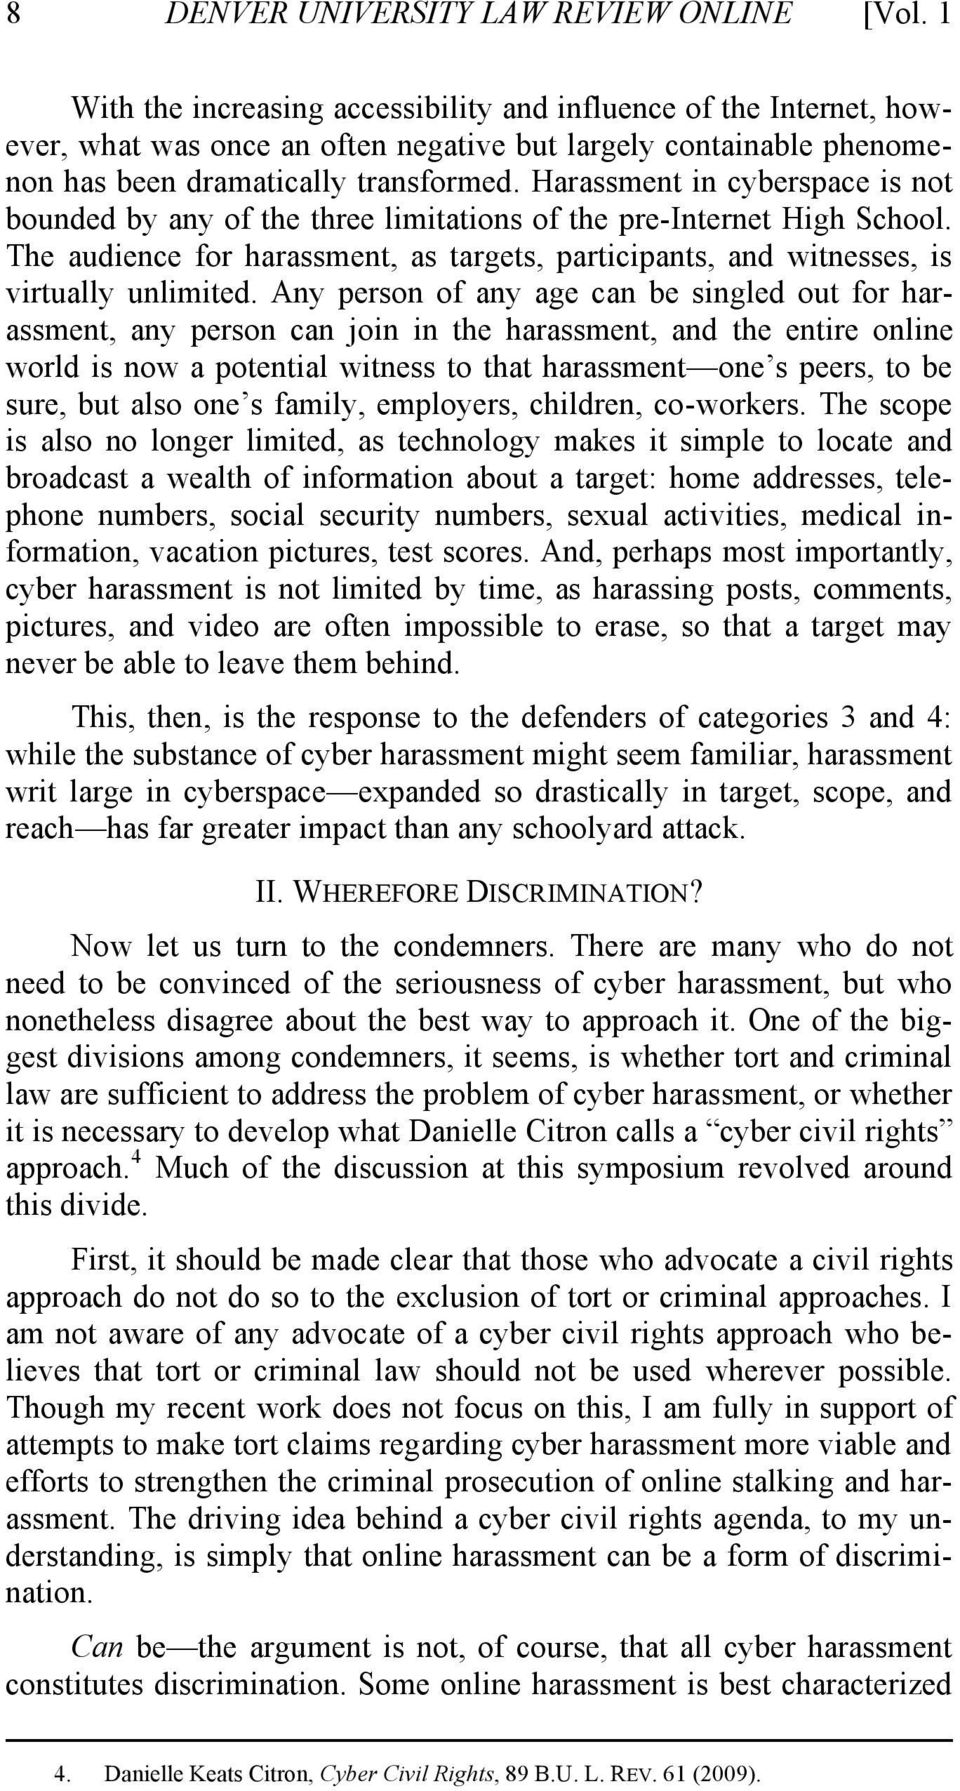 Harassment in cyberspace is not bounded by any of the three limitations of the pre-internet High School. The audience for harassment, as targets, participants, and witnesses, is virtually unlimited.